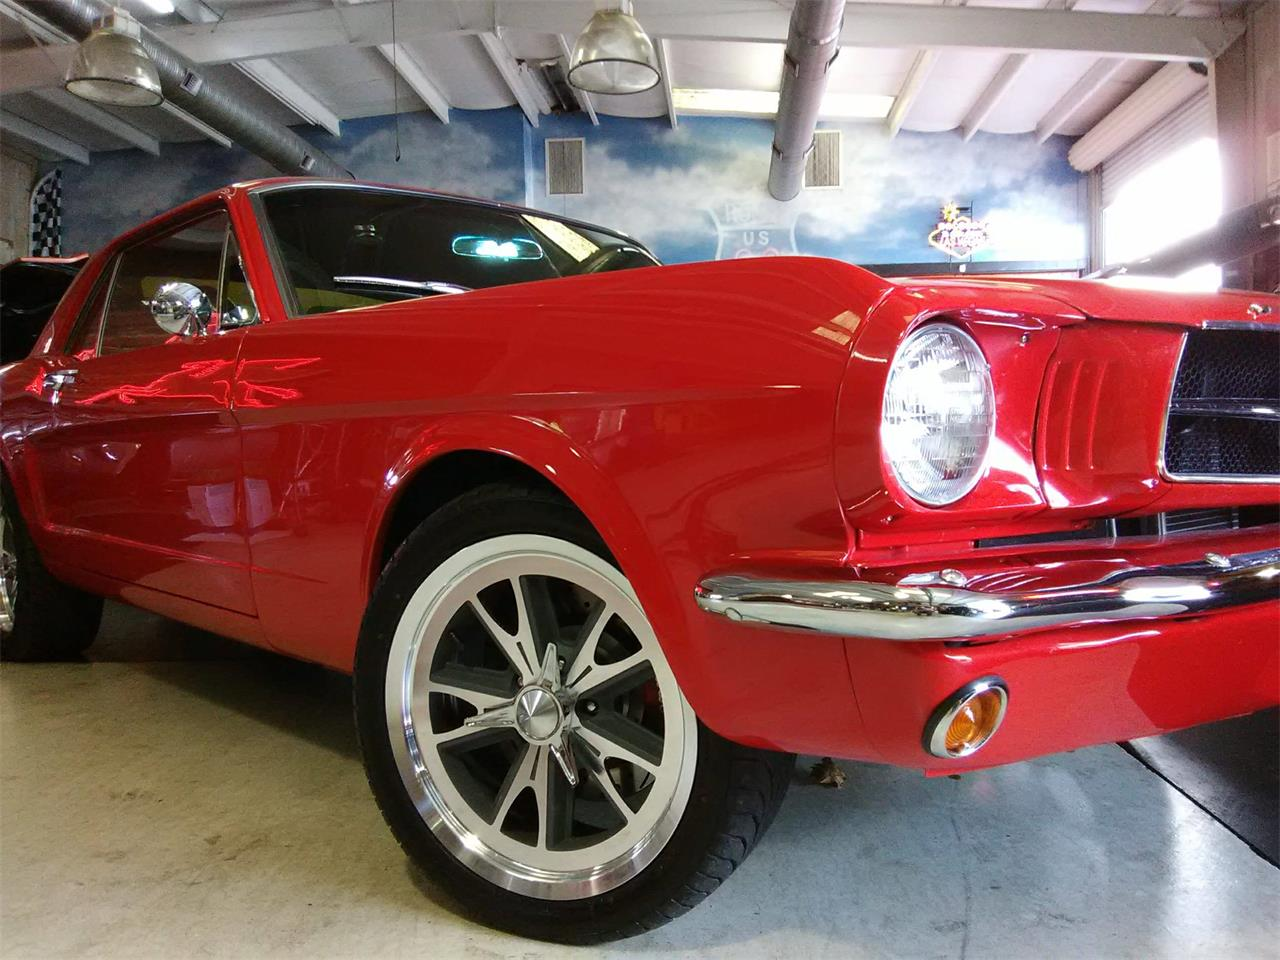 Large Picture of Classic '65 Ford Mustang - $28,999.00 - MCX4